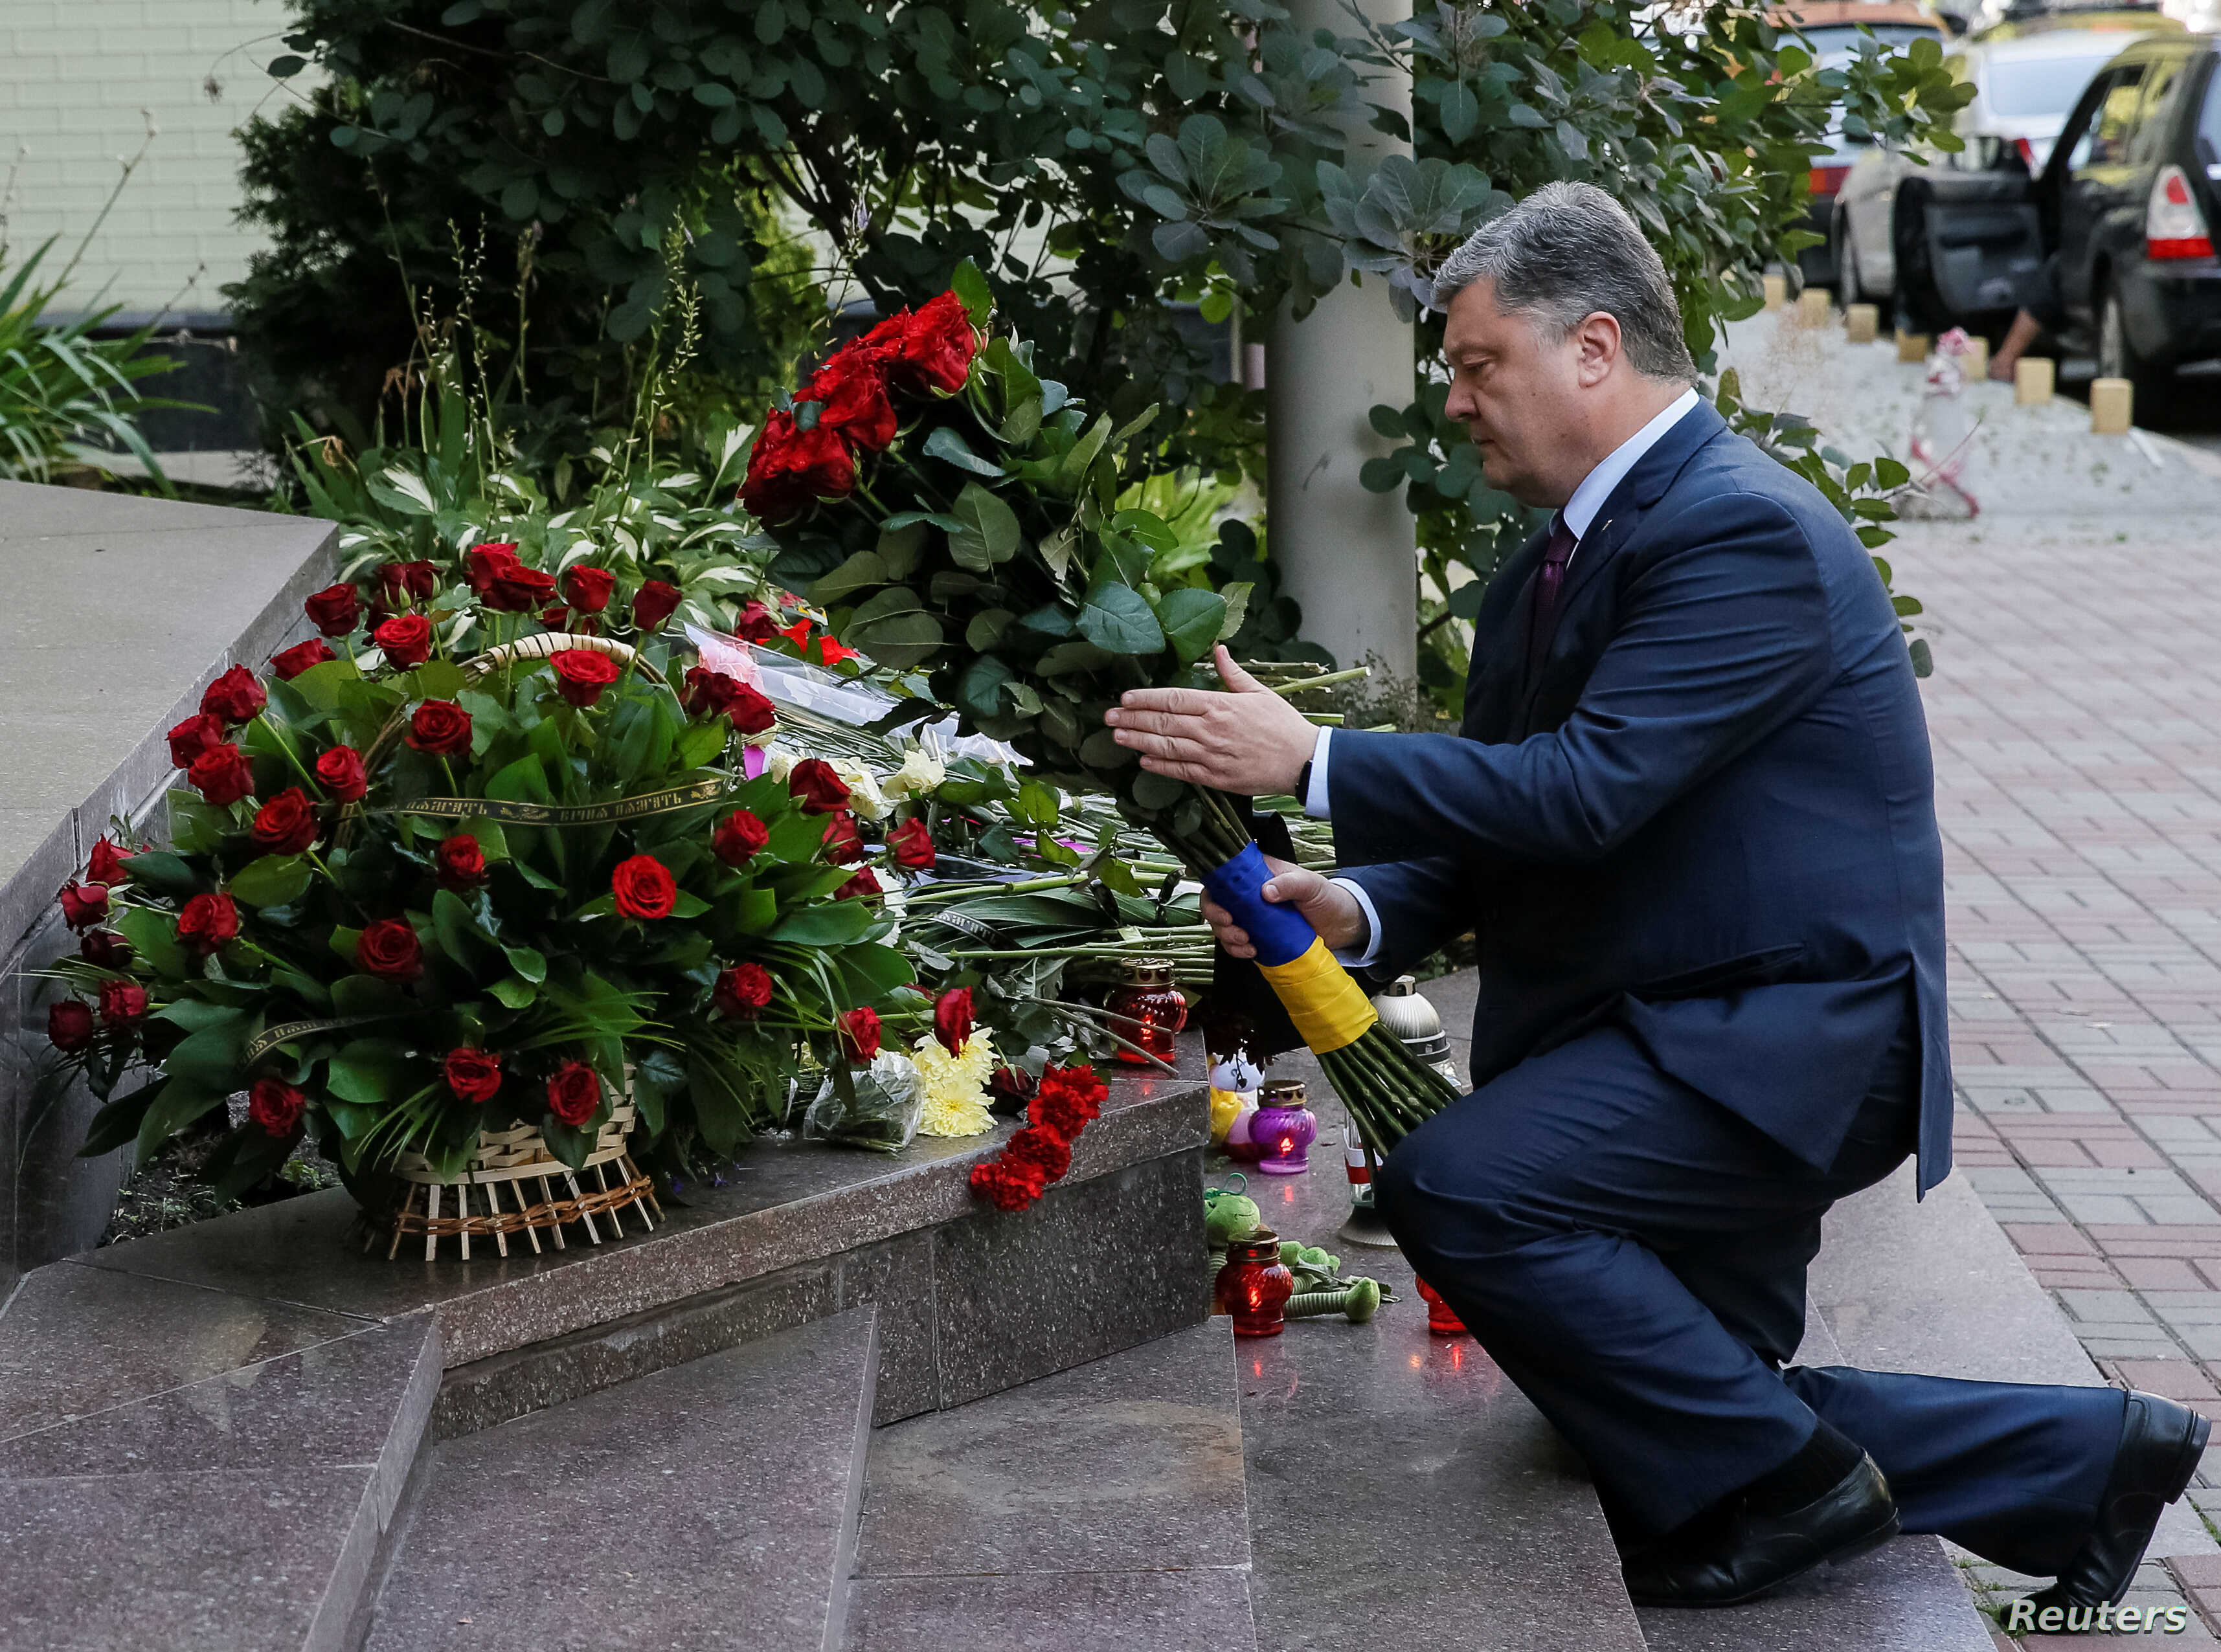 Ukraine's President Petro Poroshenko lays flowers to pay tribute to the victims of the Bastille Day truck attack in Nice, in front of the French embassy in Kiev, Ukraine, July 15, 2016.